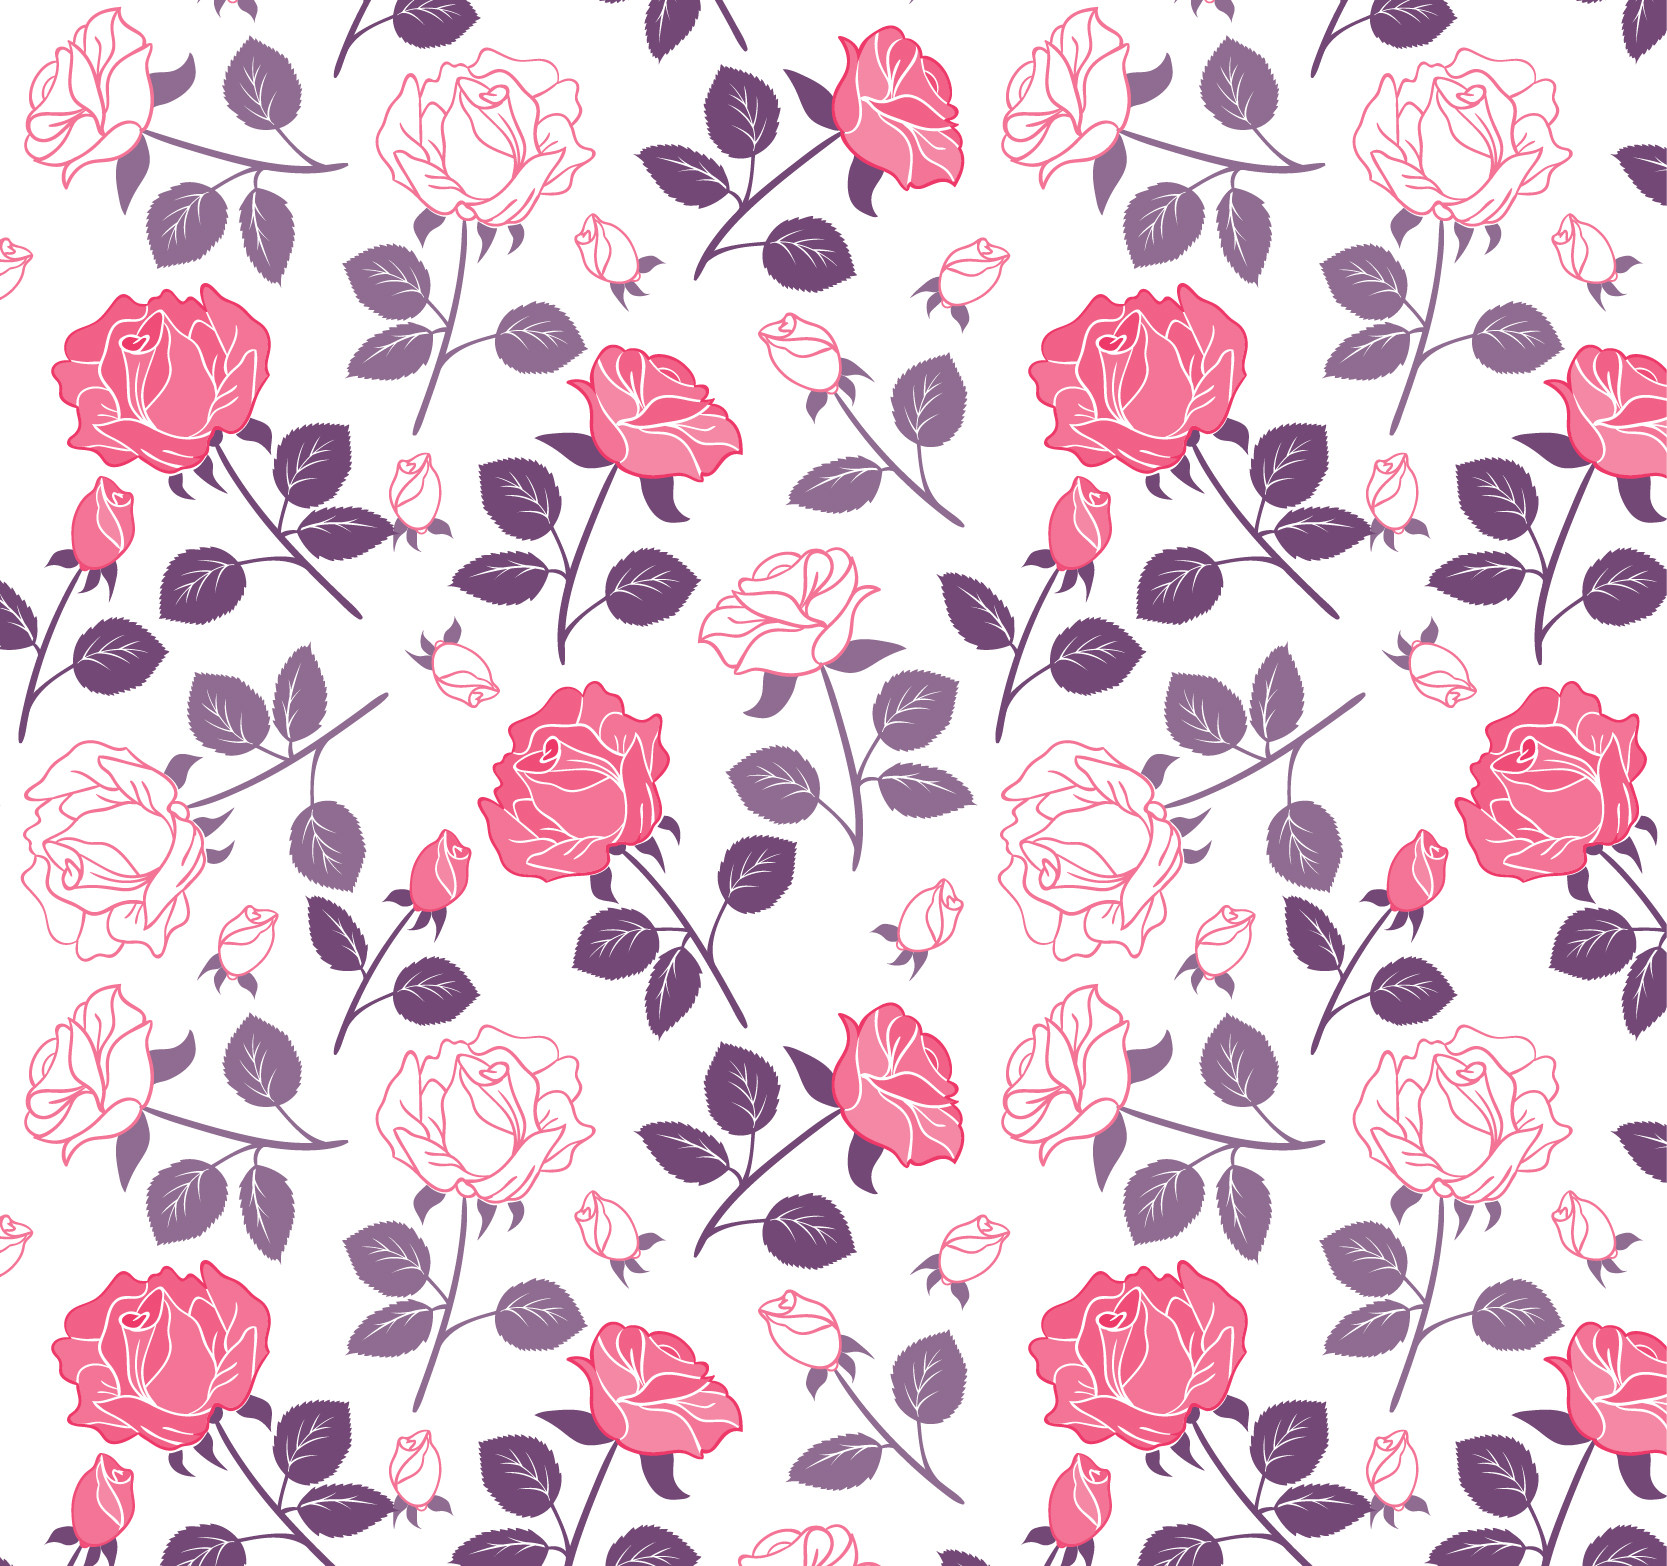 10+ Pink Floral Patterns | Photoshop Patterns | FreeCreatives